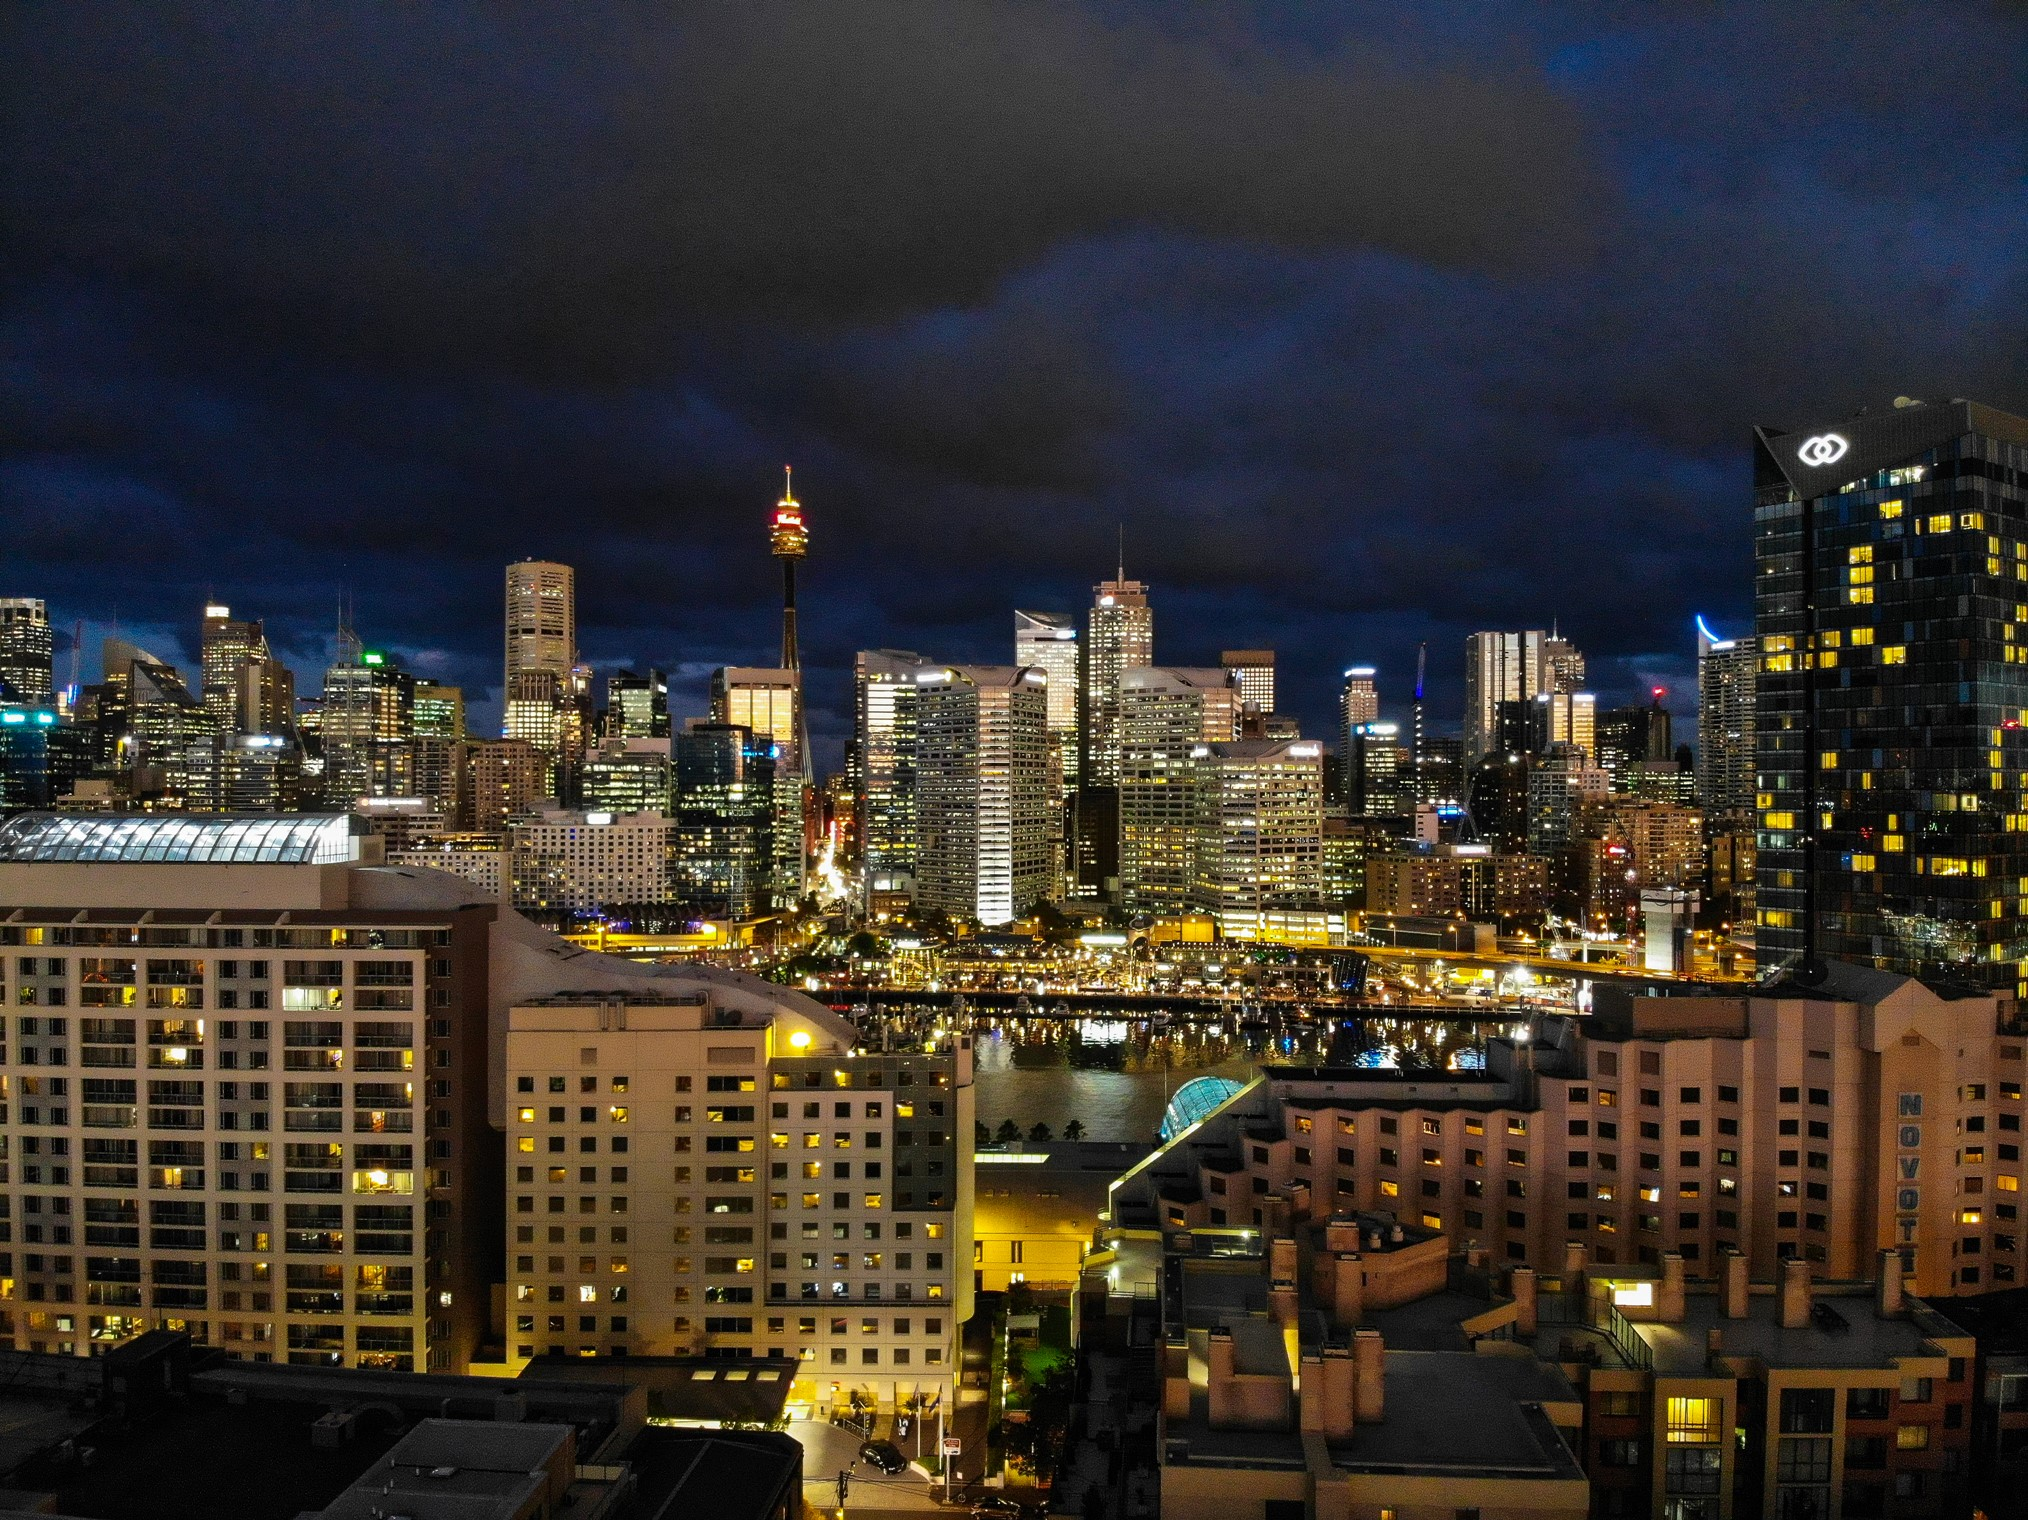 Sydney skyline in the night